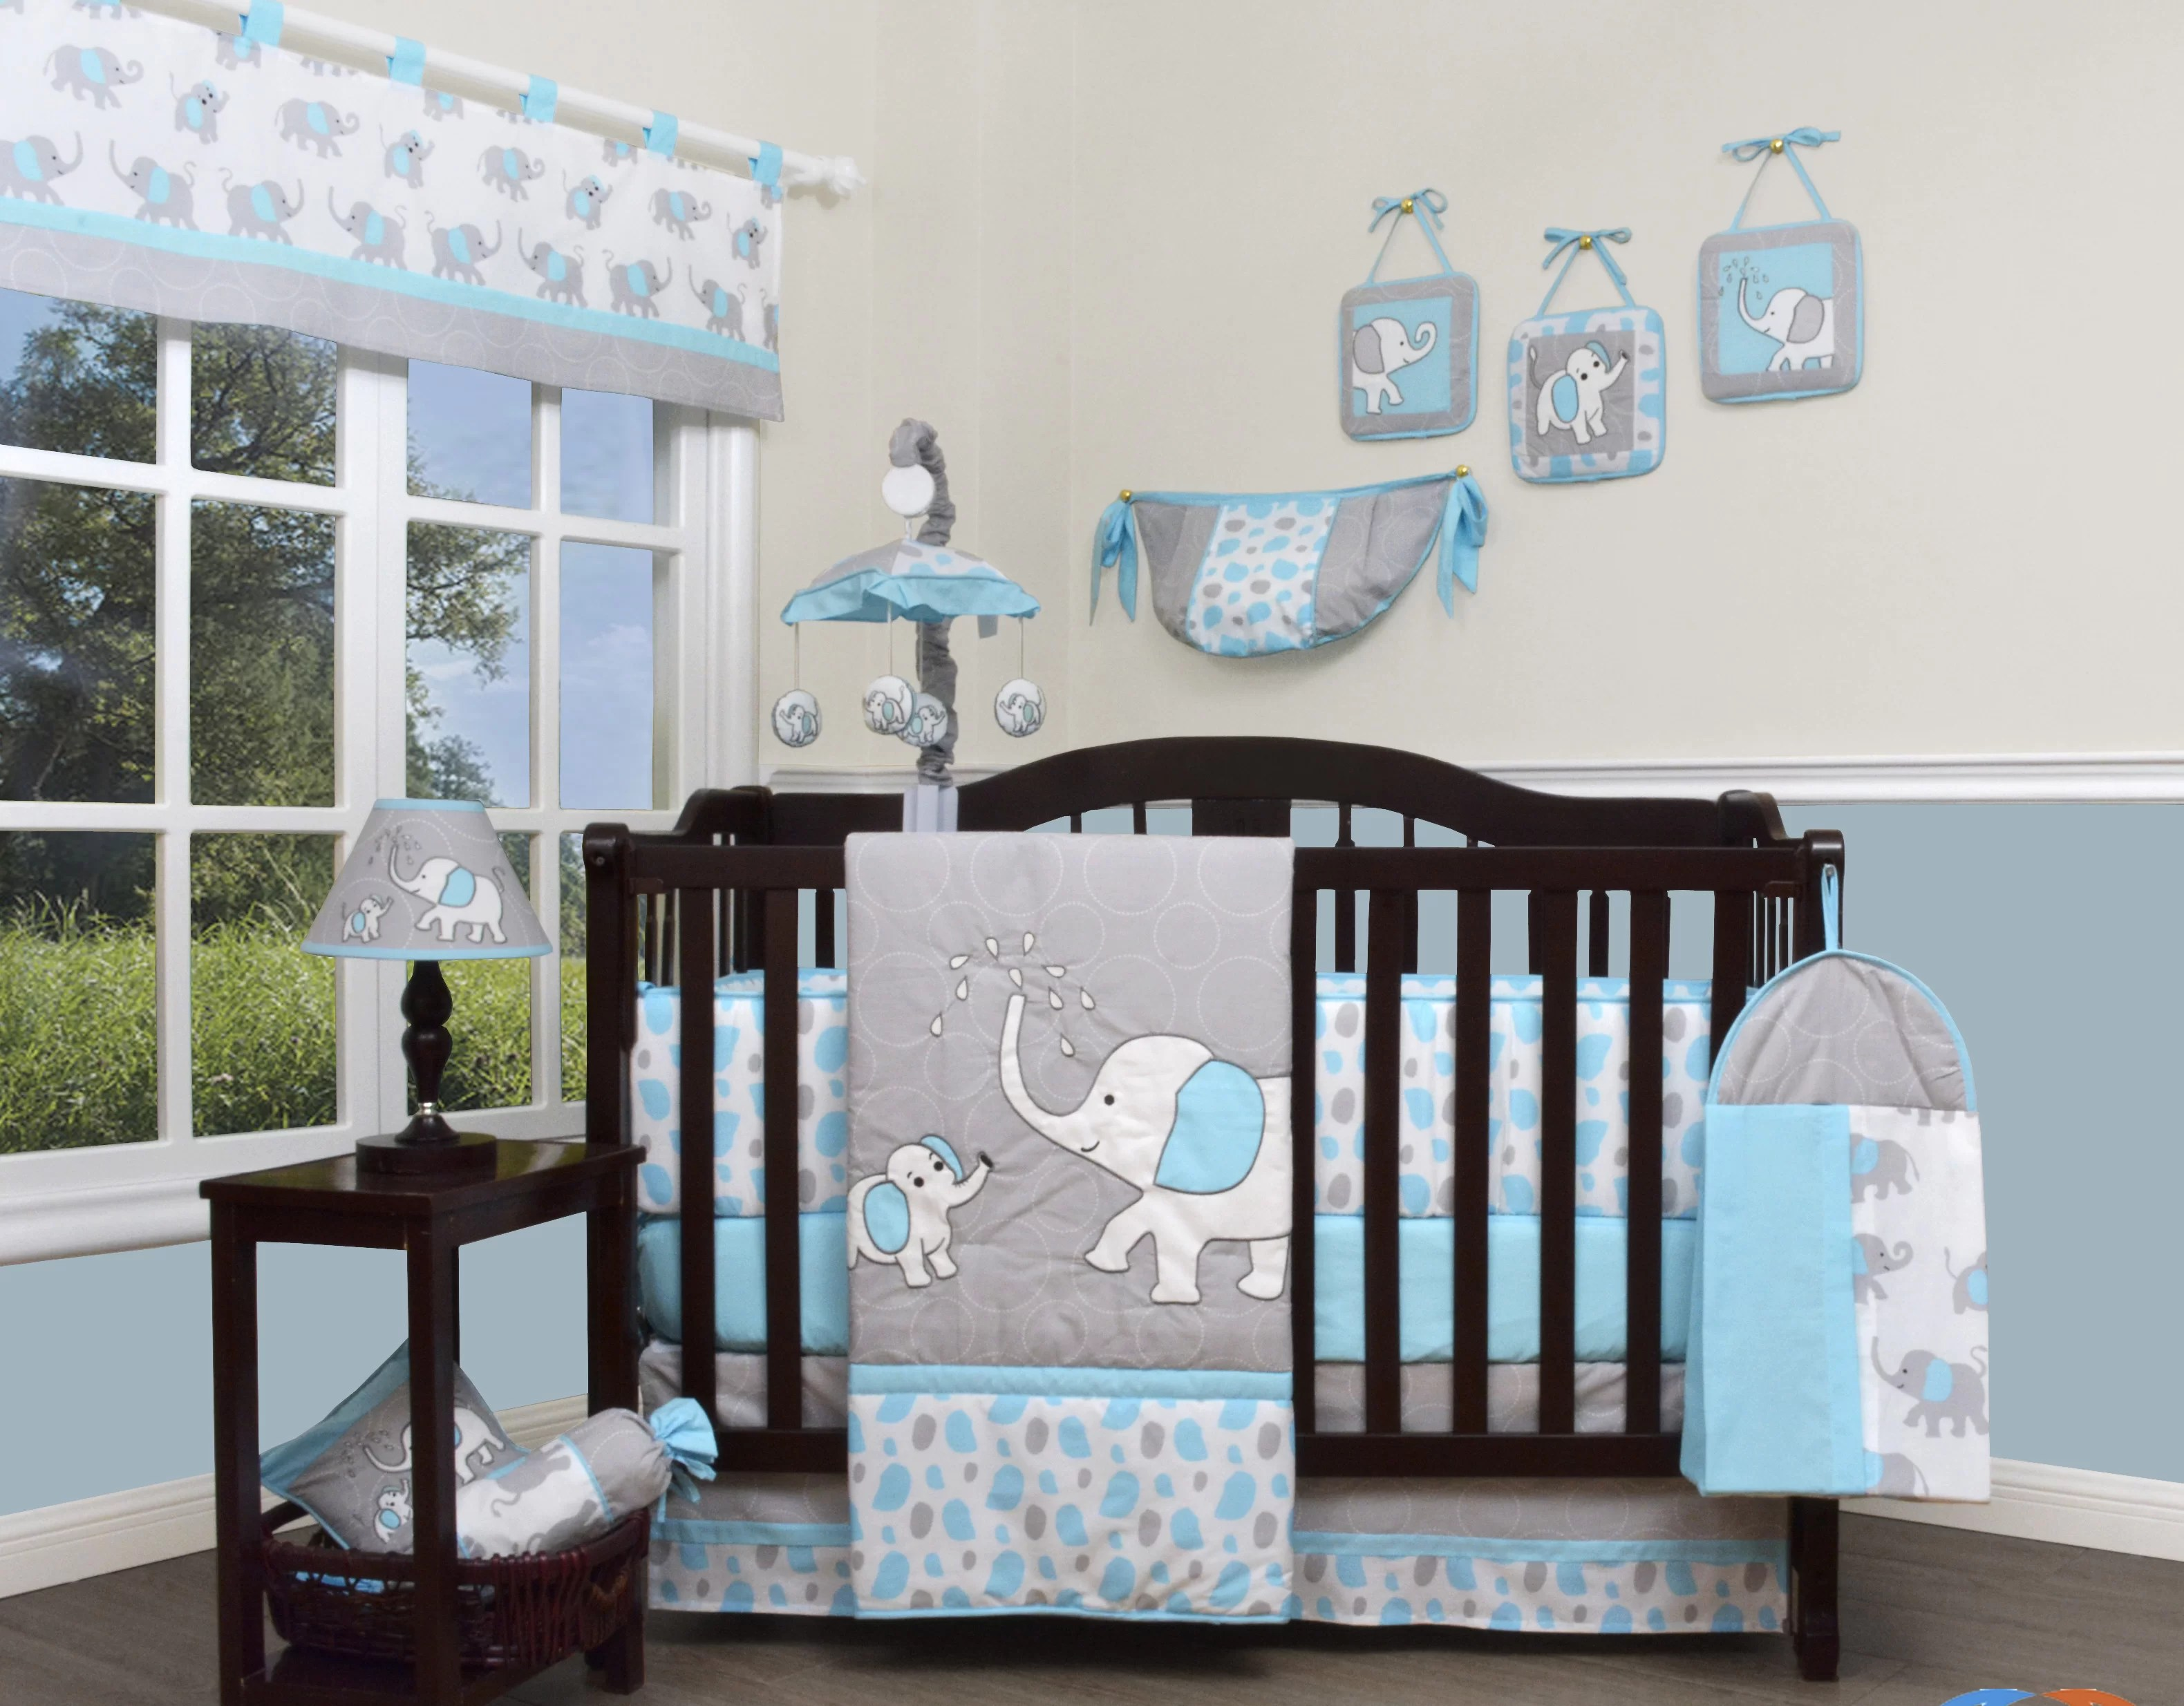 Full Crib Bedding Sets Blizzard Elephant 13 Piece Crib Bedding Set